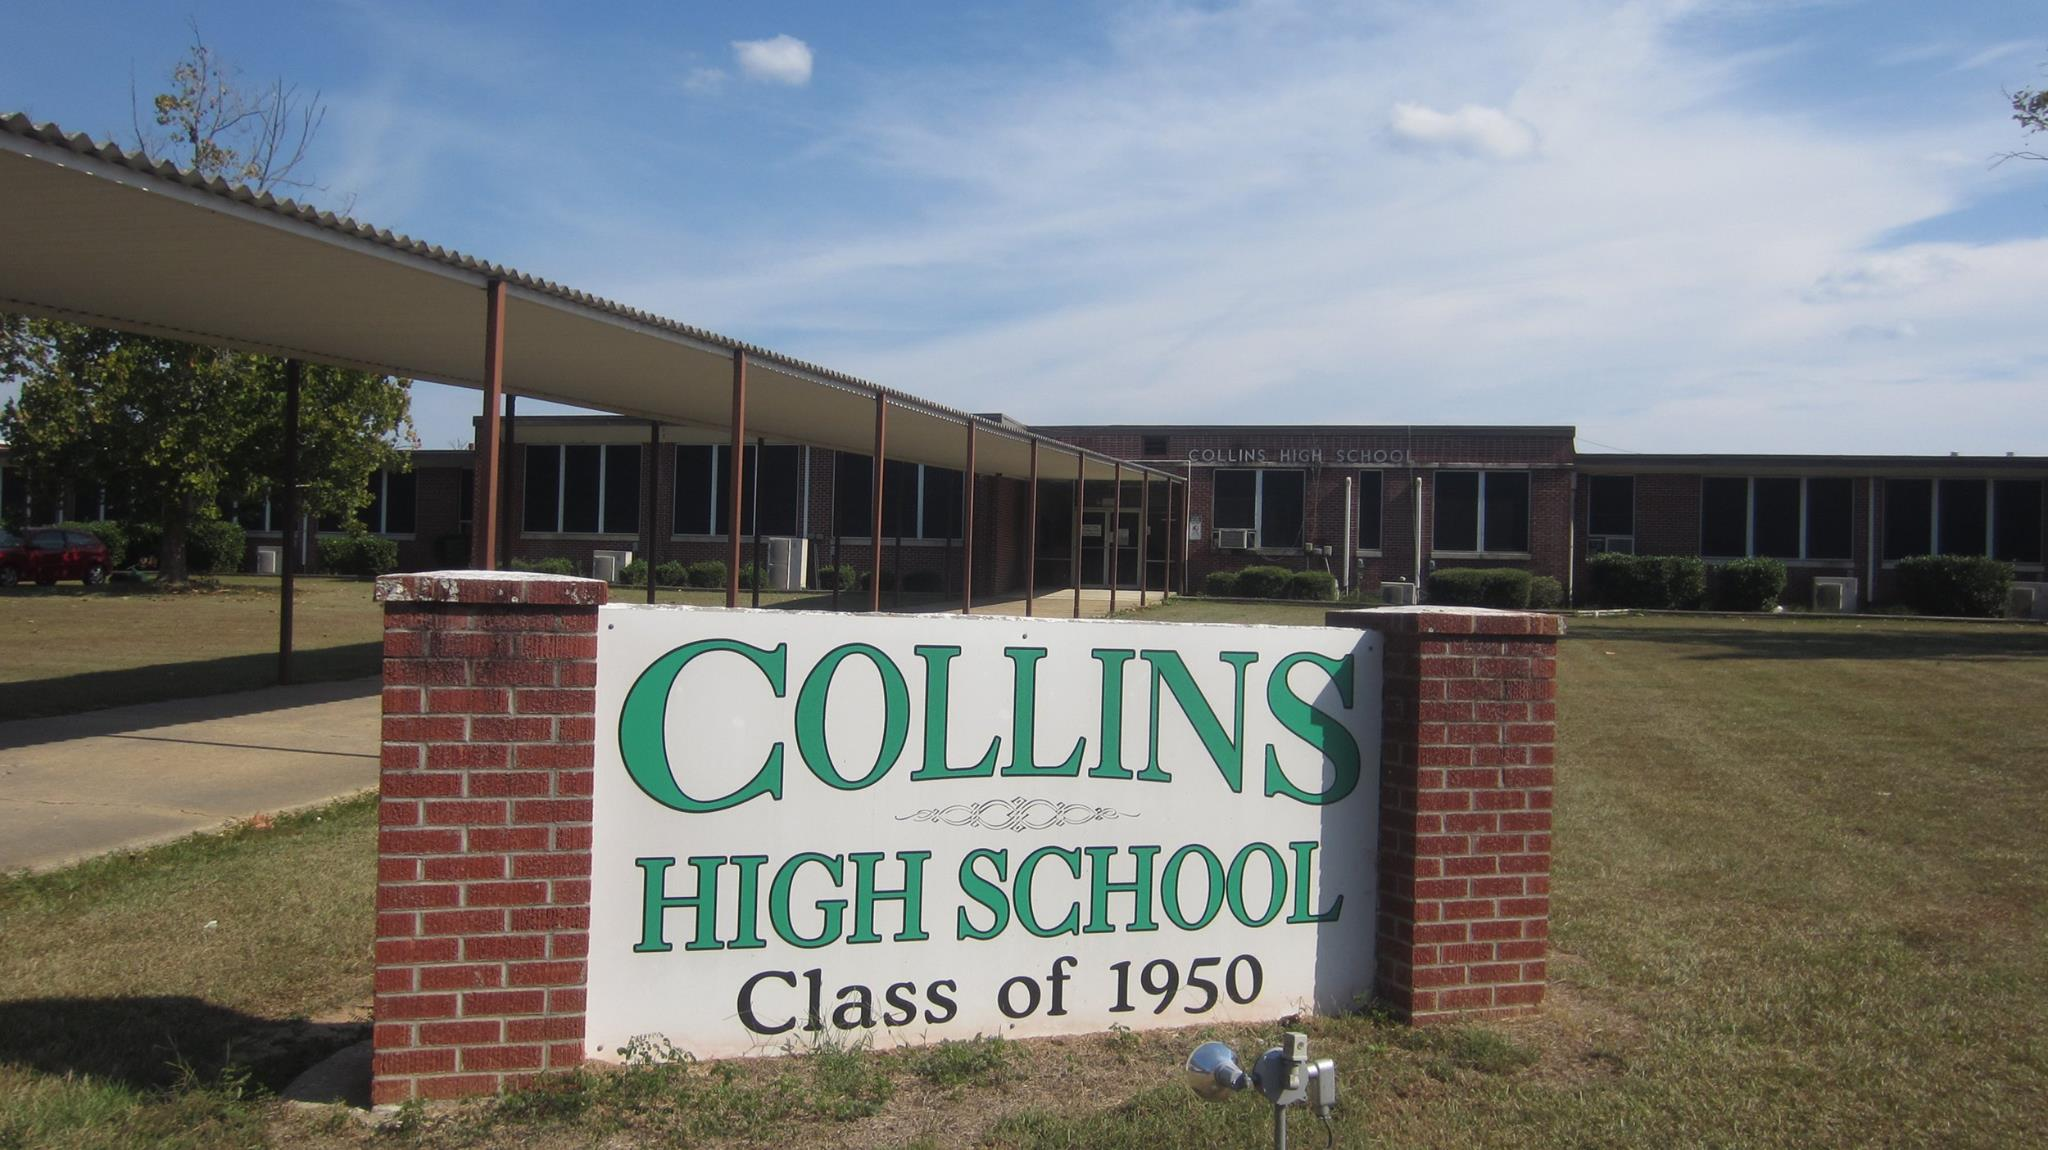 Collins High School